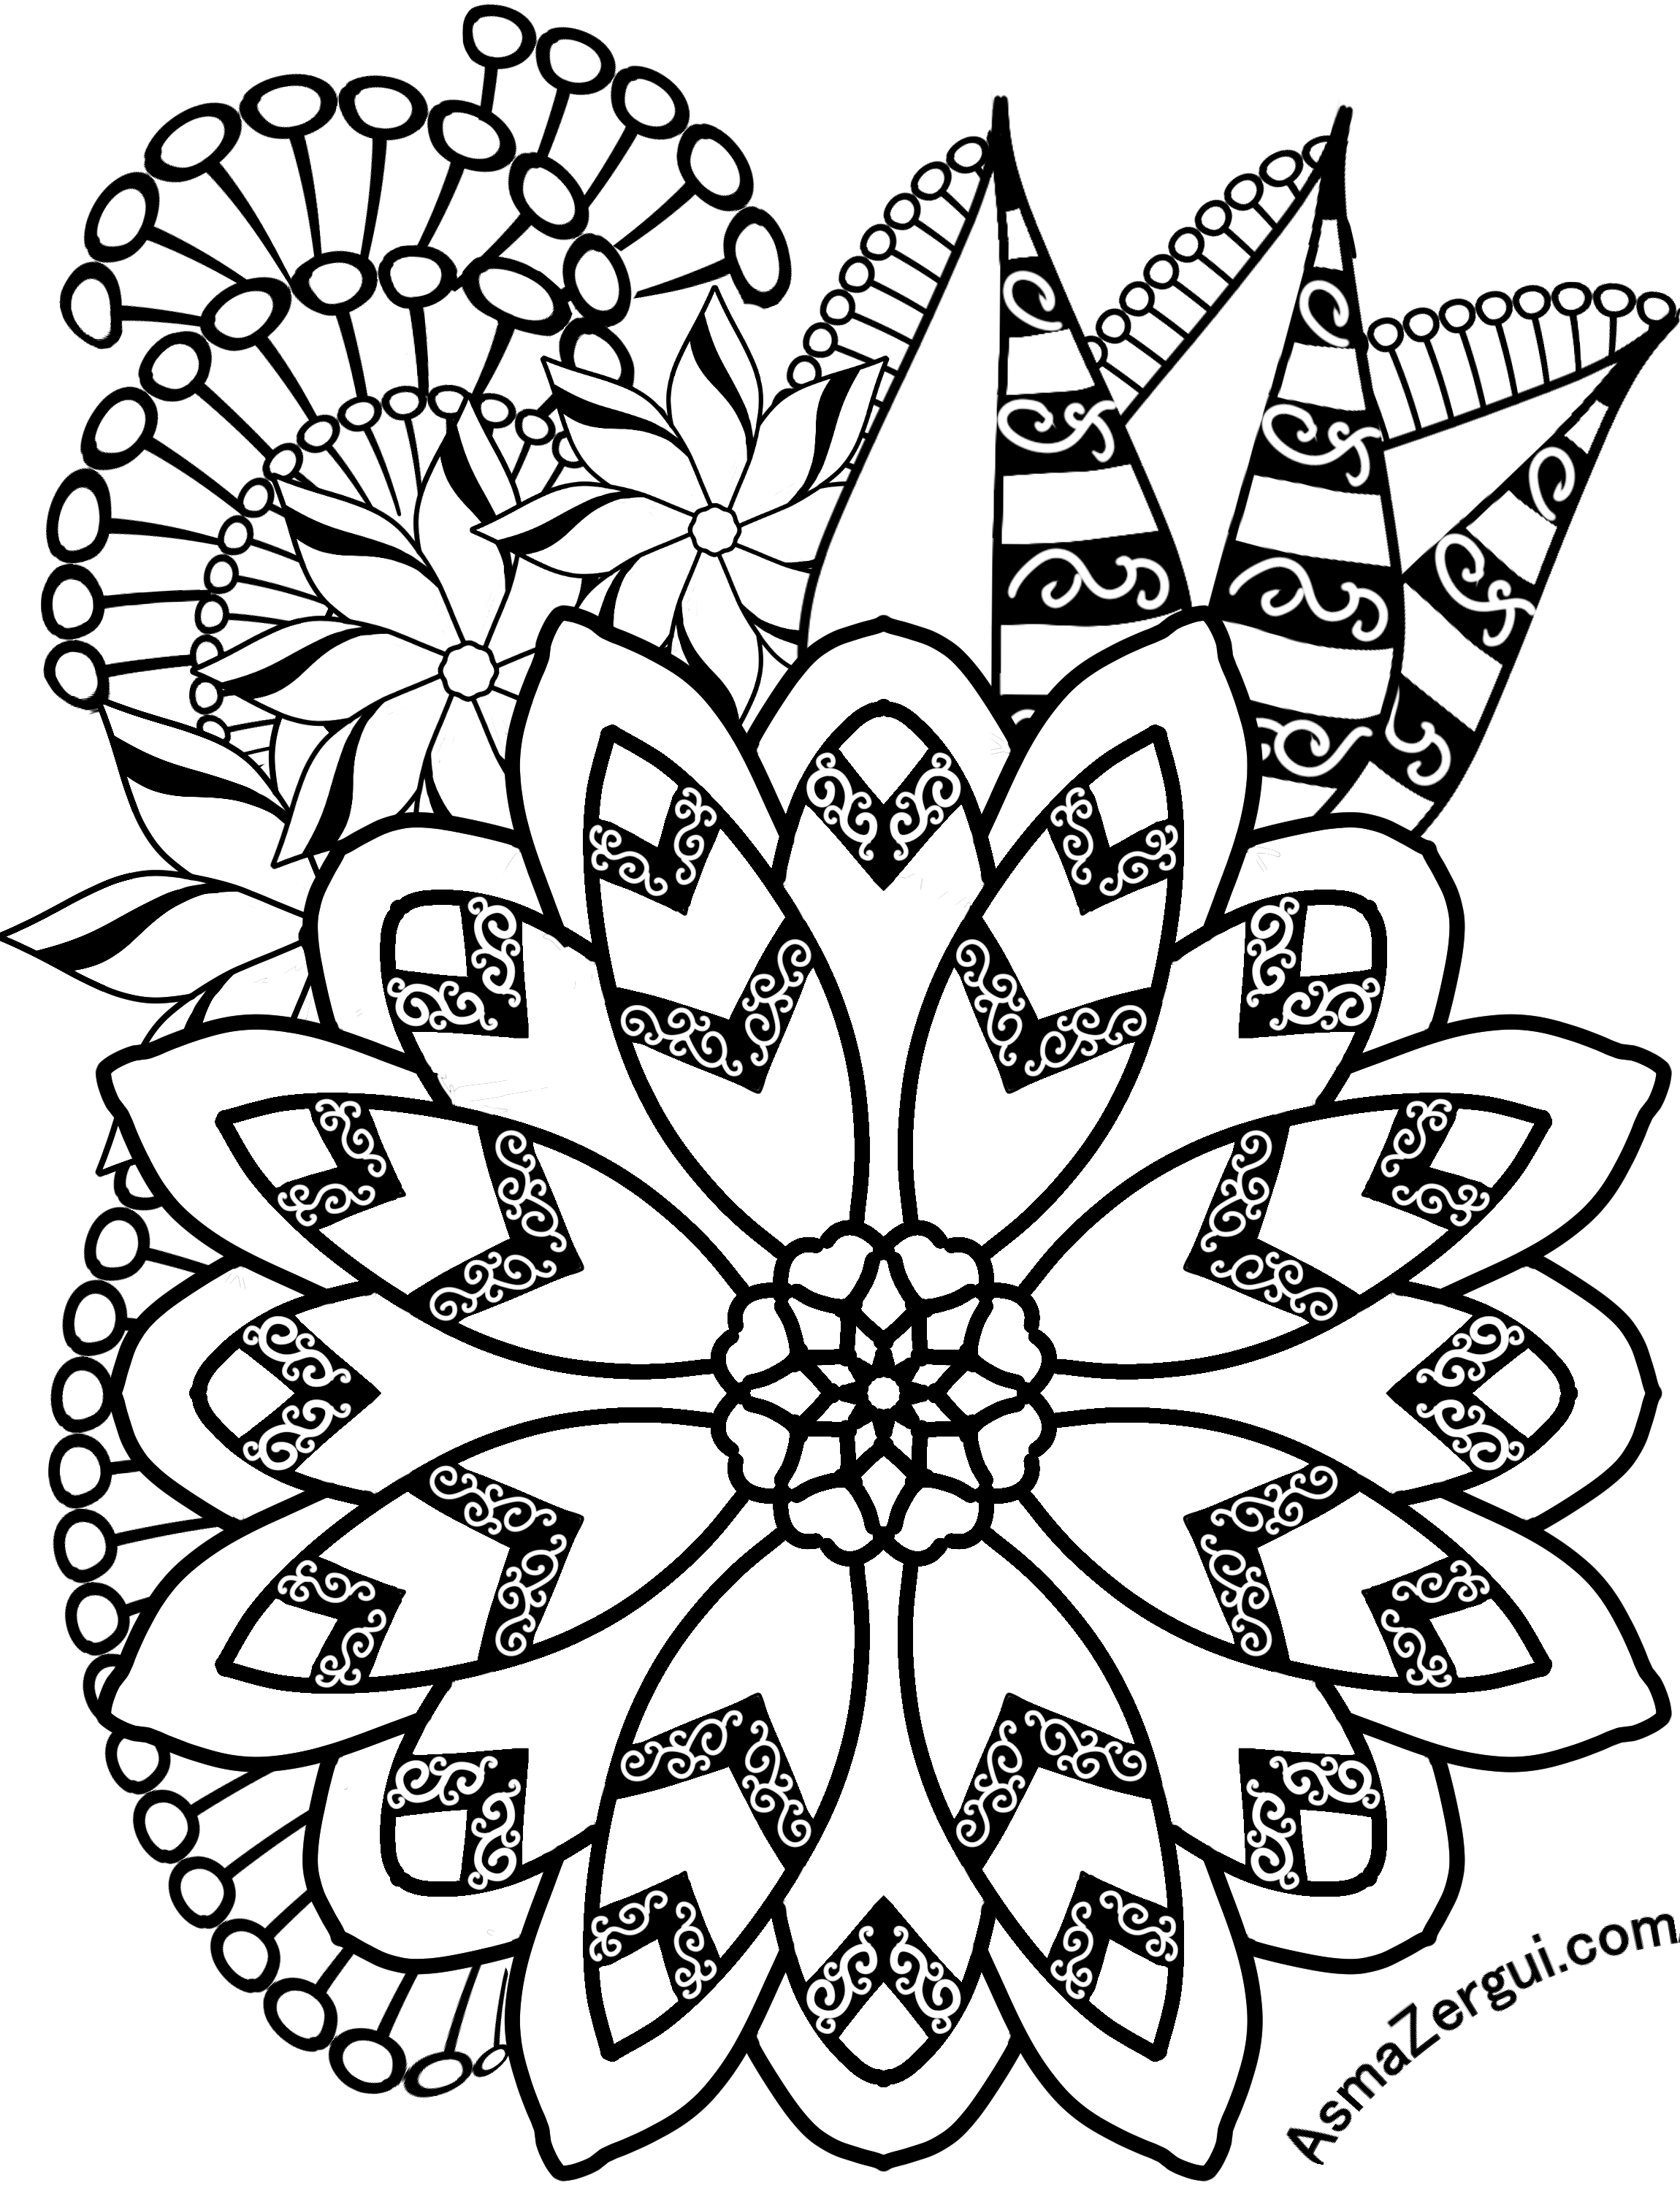 free printable flower coloring pages for adults free coloring pages adult coloring worldwide free adults flower for coloring pages printable